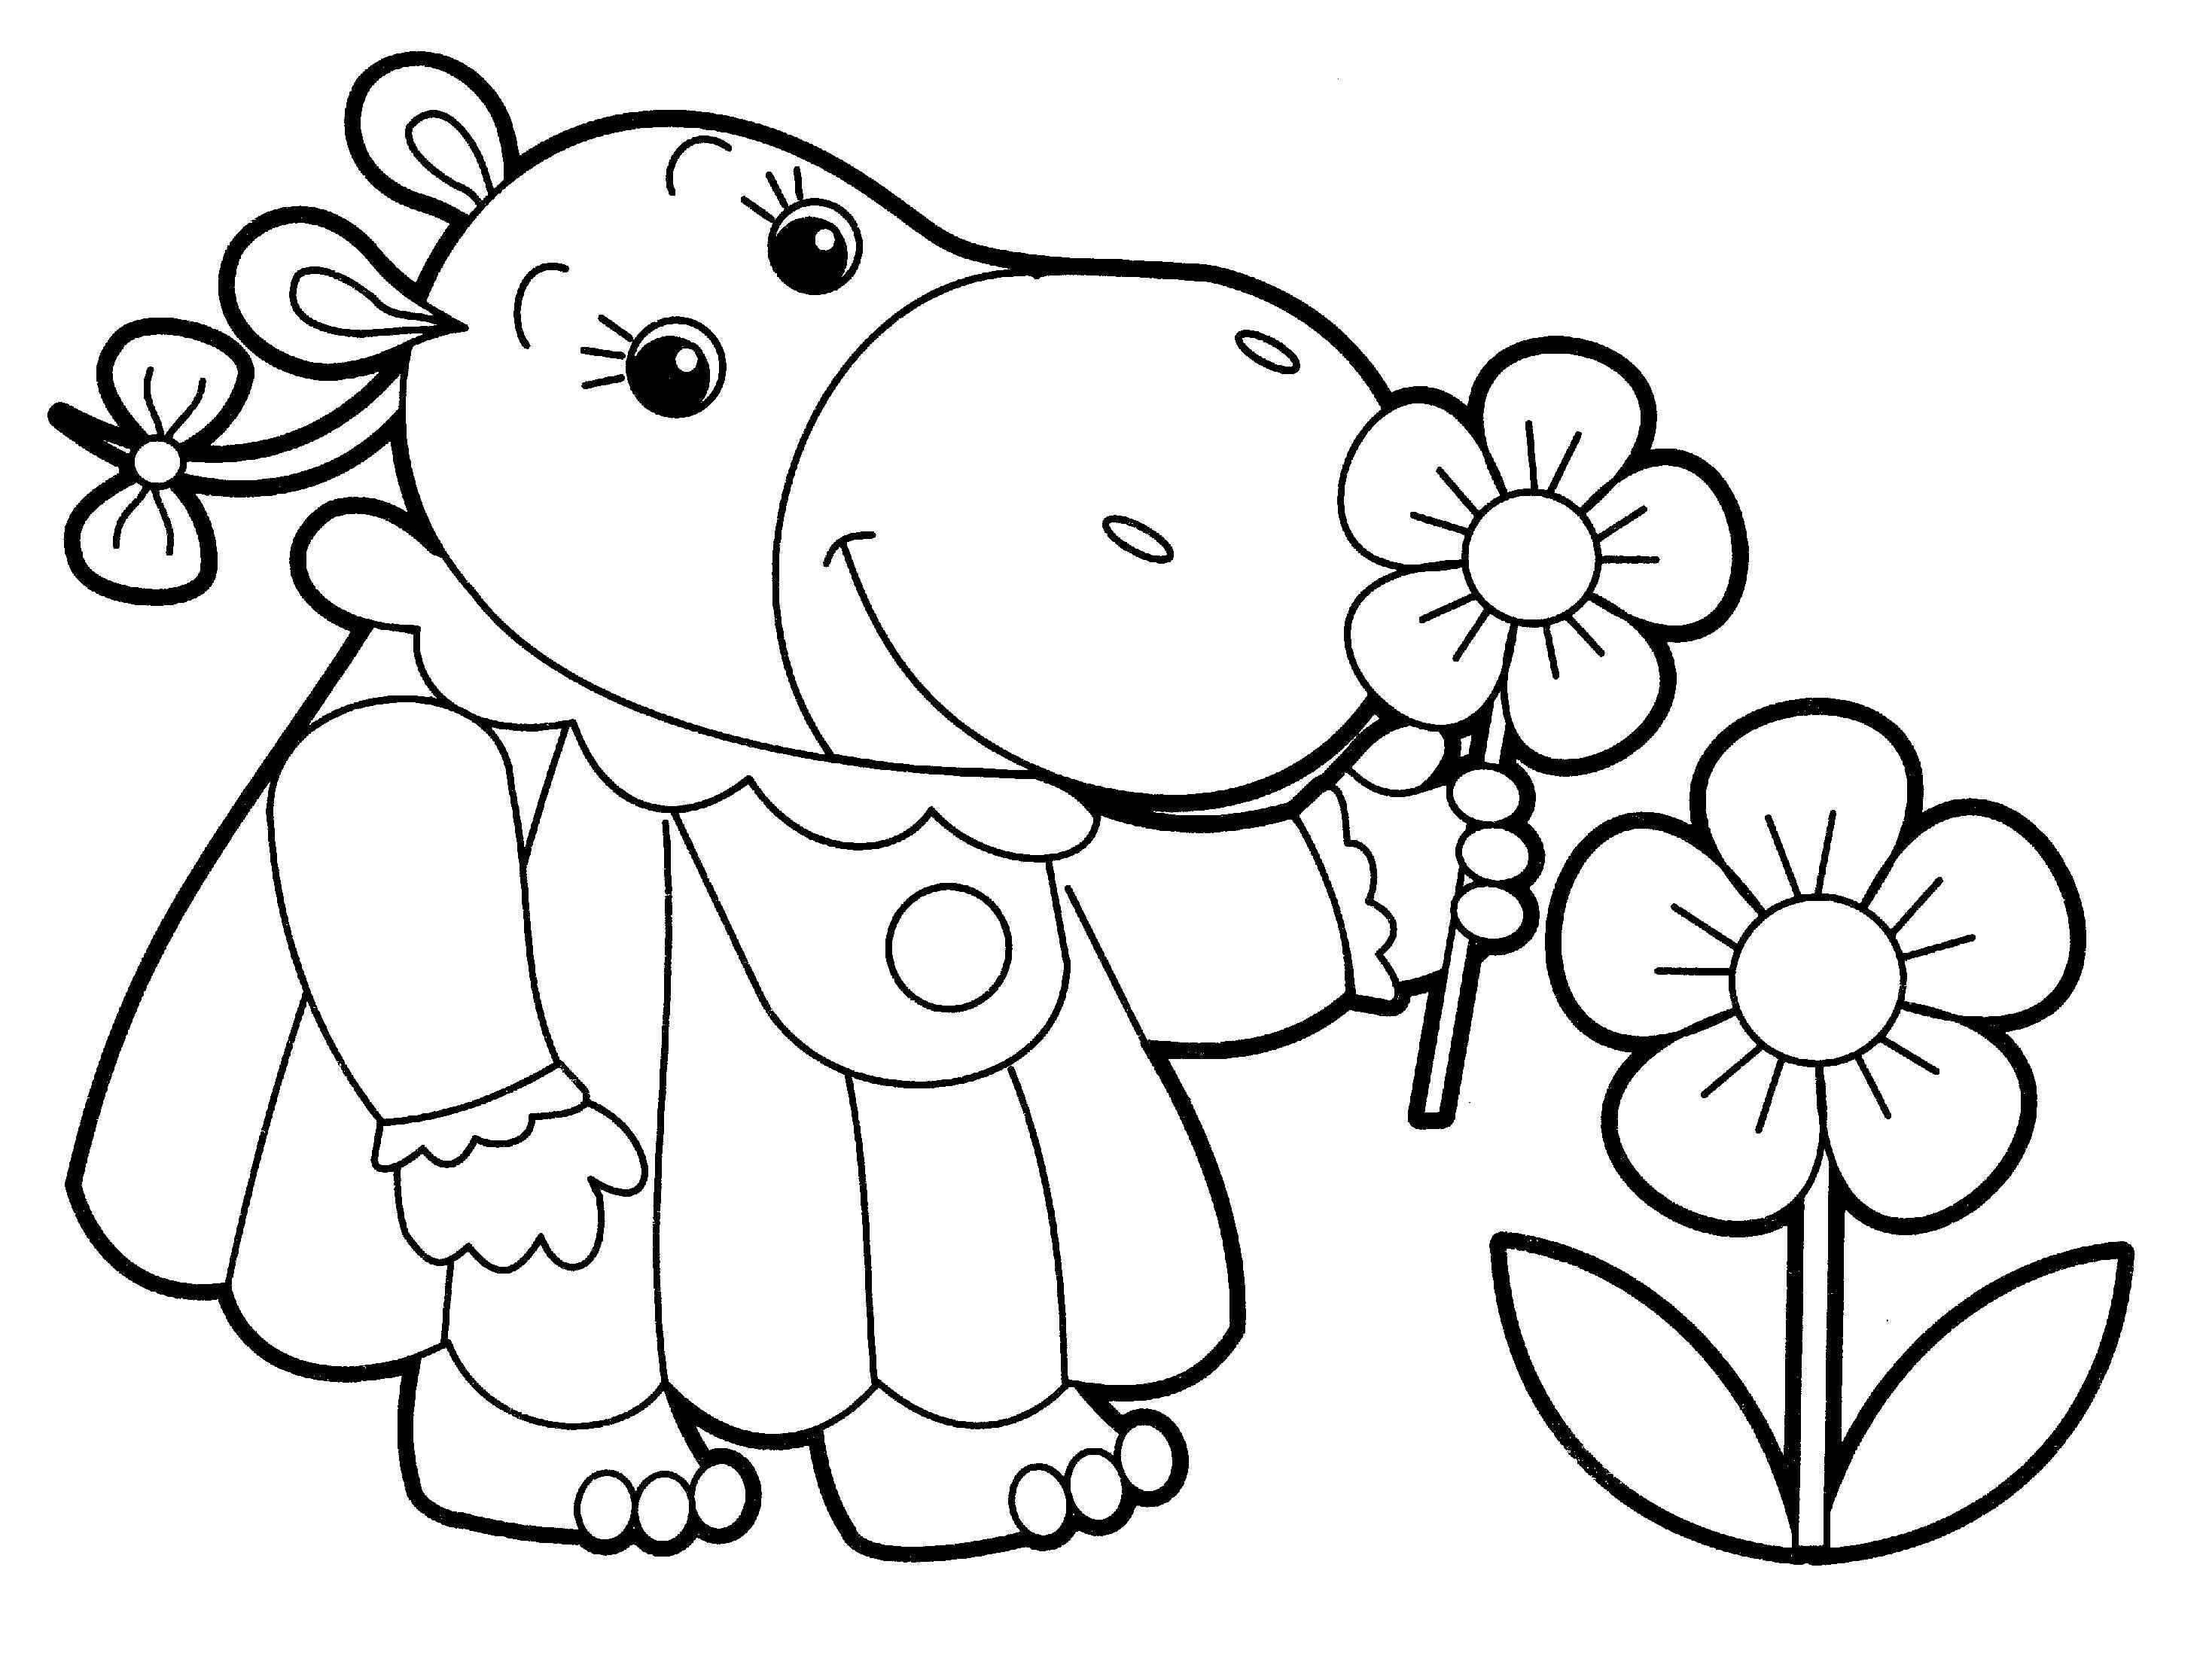 little kid coloring pages - animal coloring pages for adults